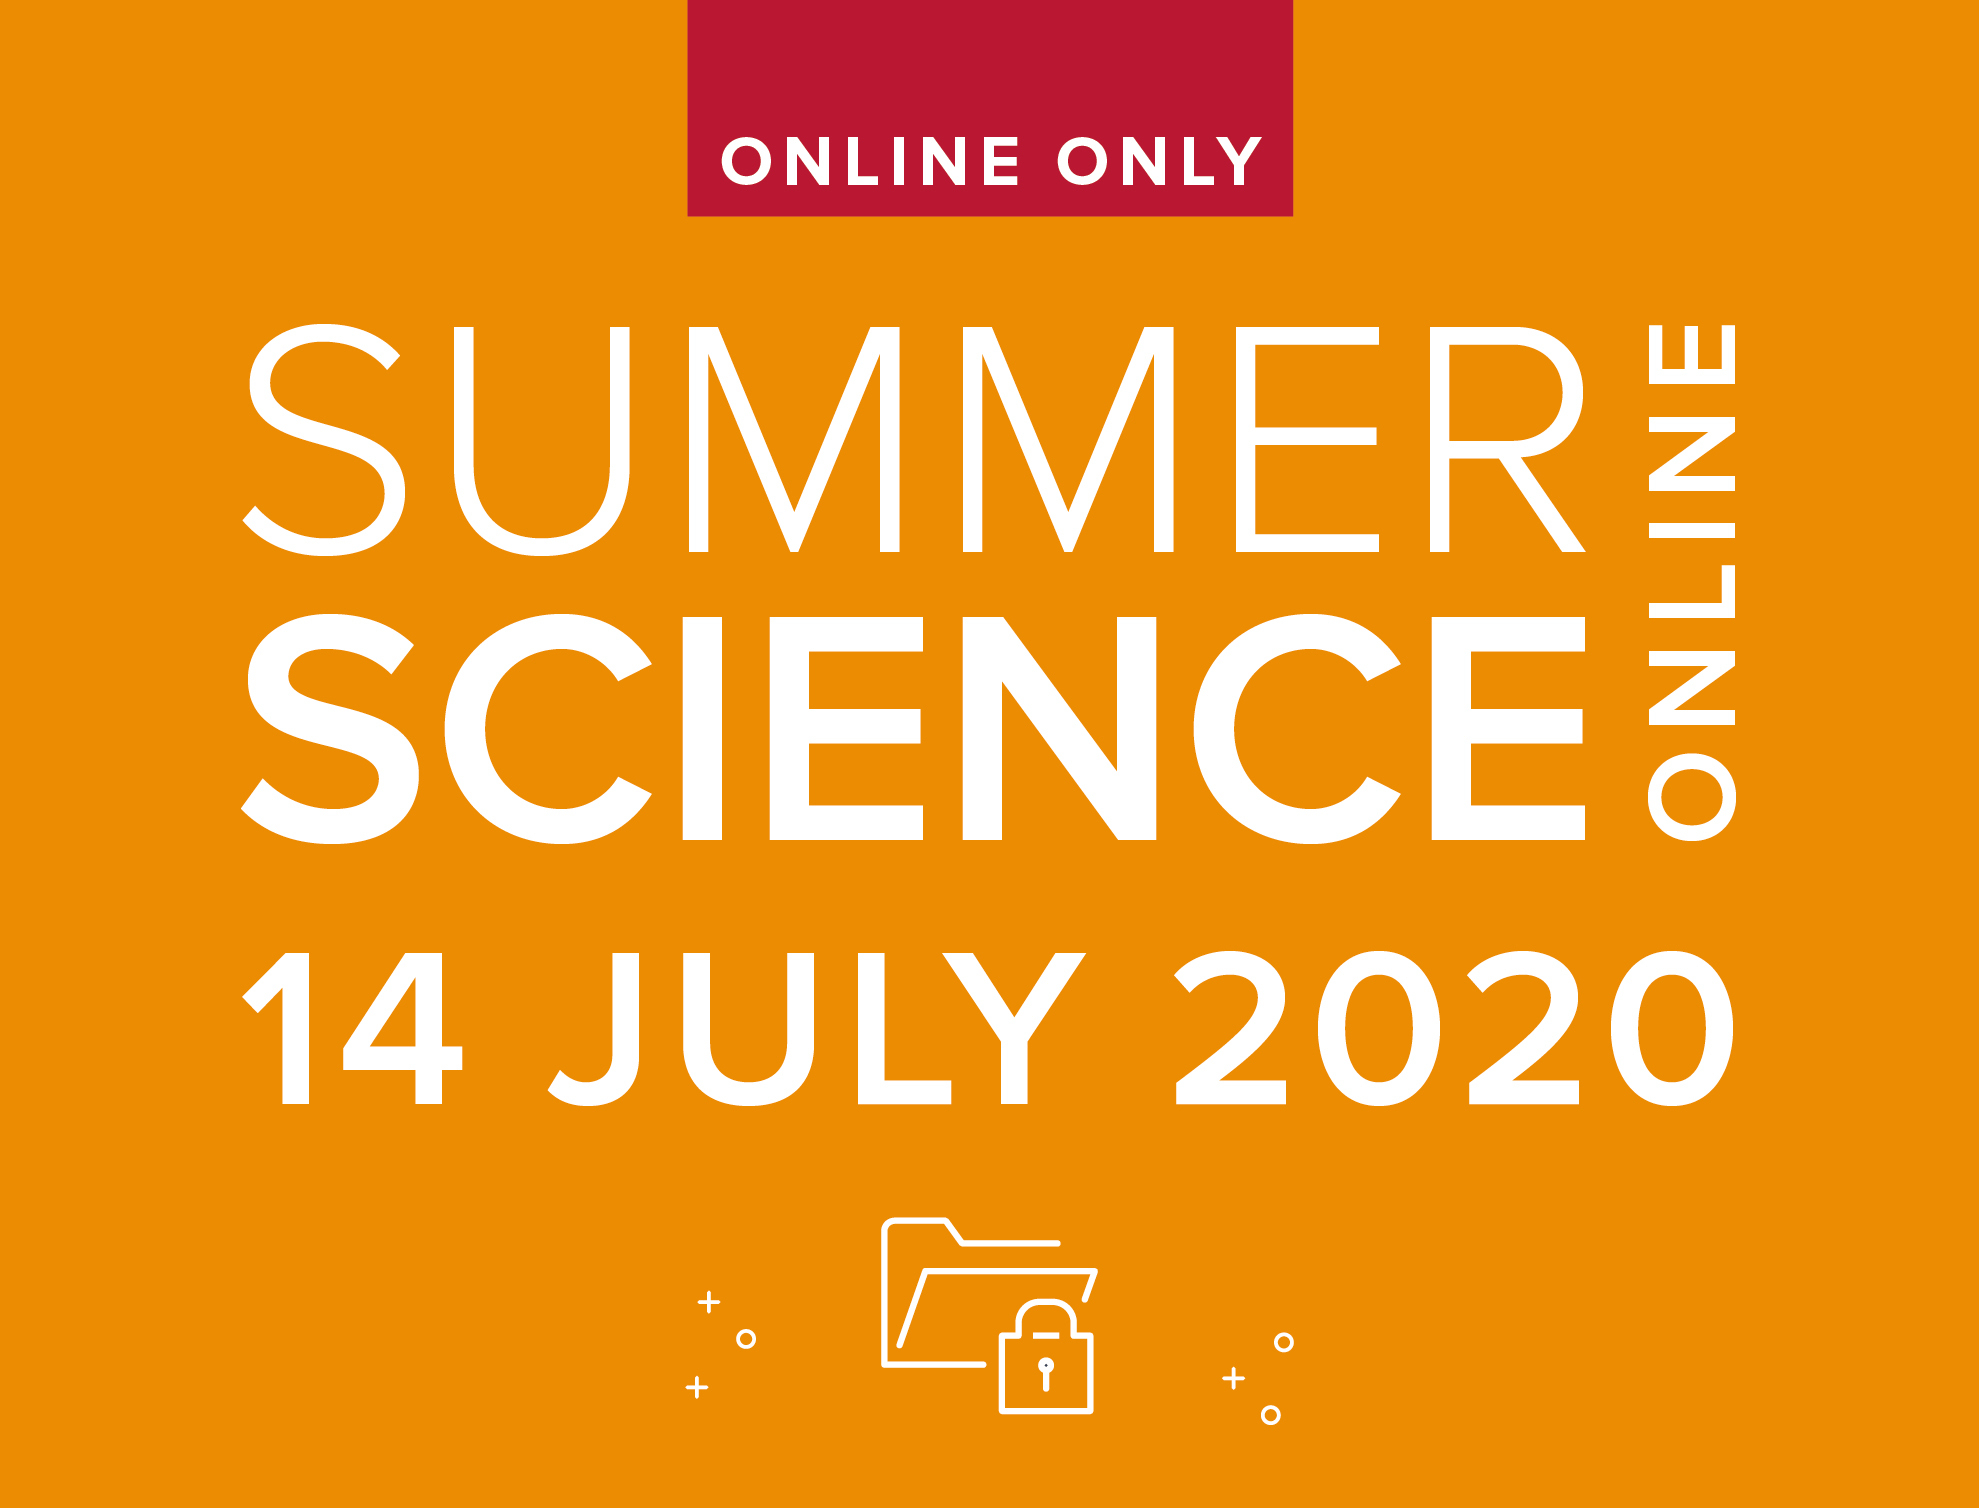 Summer Science Online 14 July 2020